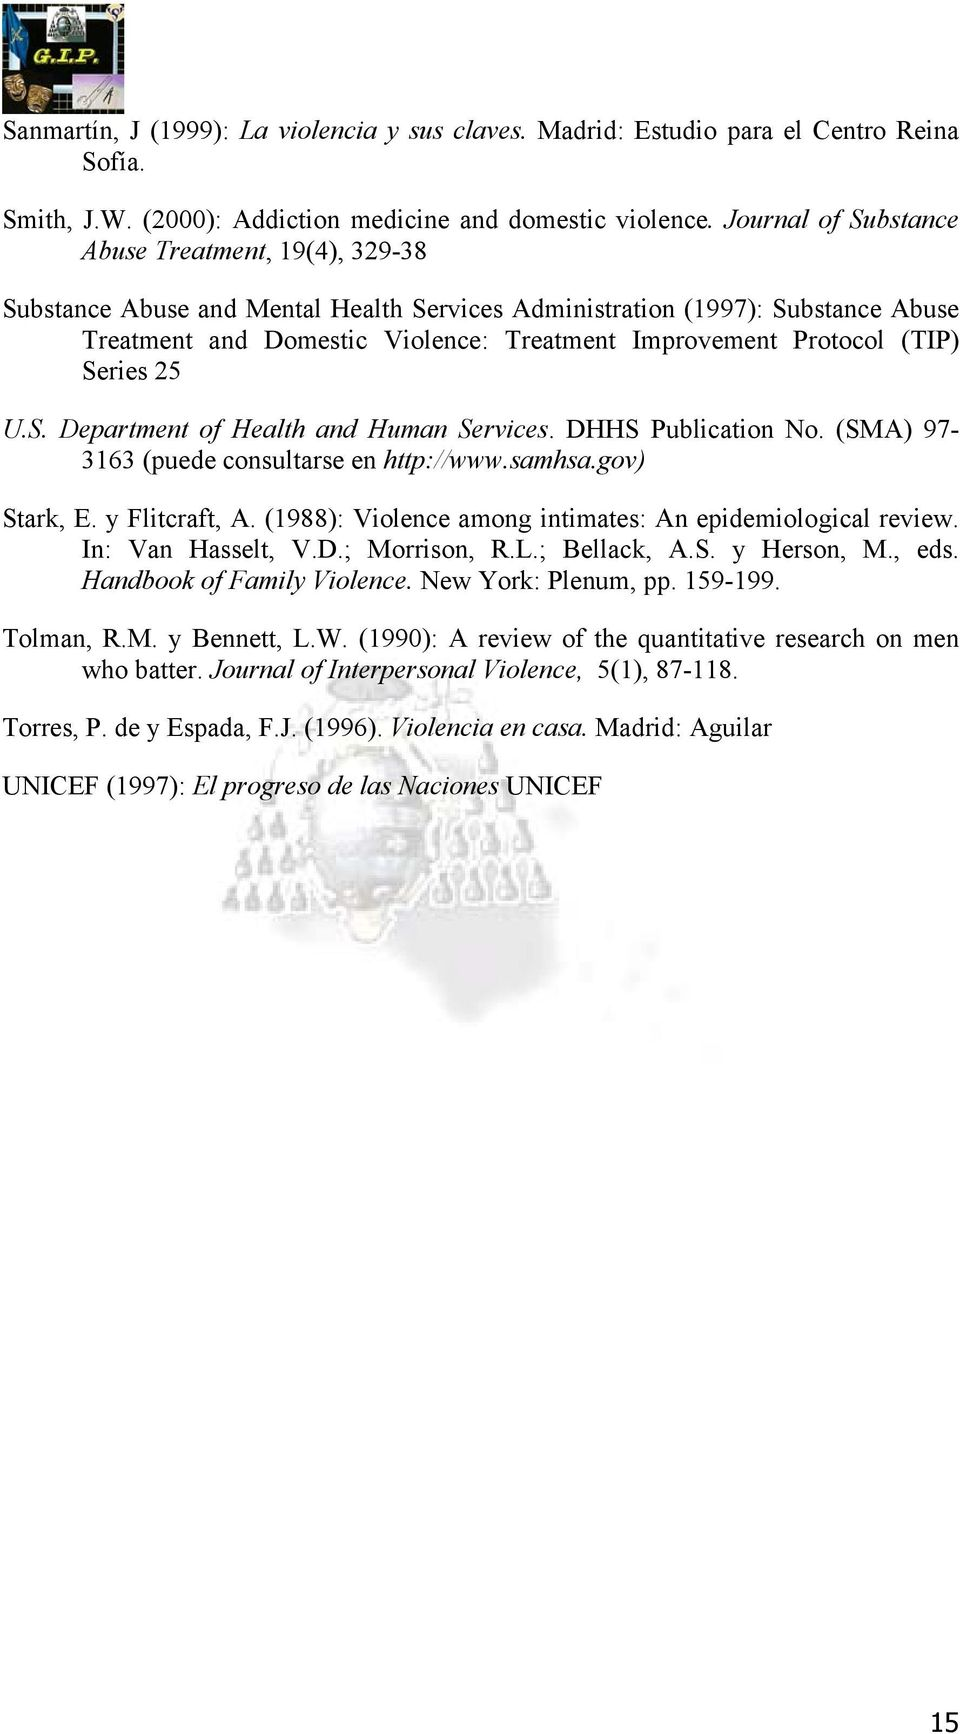 (TIP) Series 25 U.S. Department of Health and Human Services. DHHS Publication No. (SMA) 97-3163 (puede consultarse en http://www.samhsa.gov) Stark, E. y Flitcraft, A.